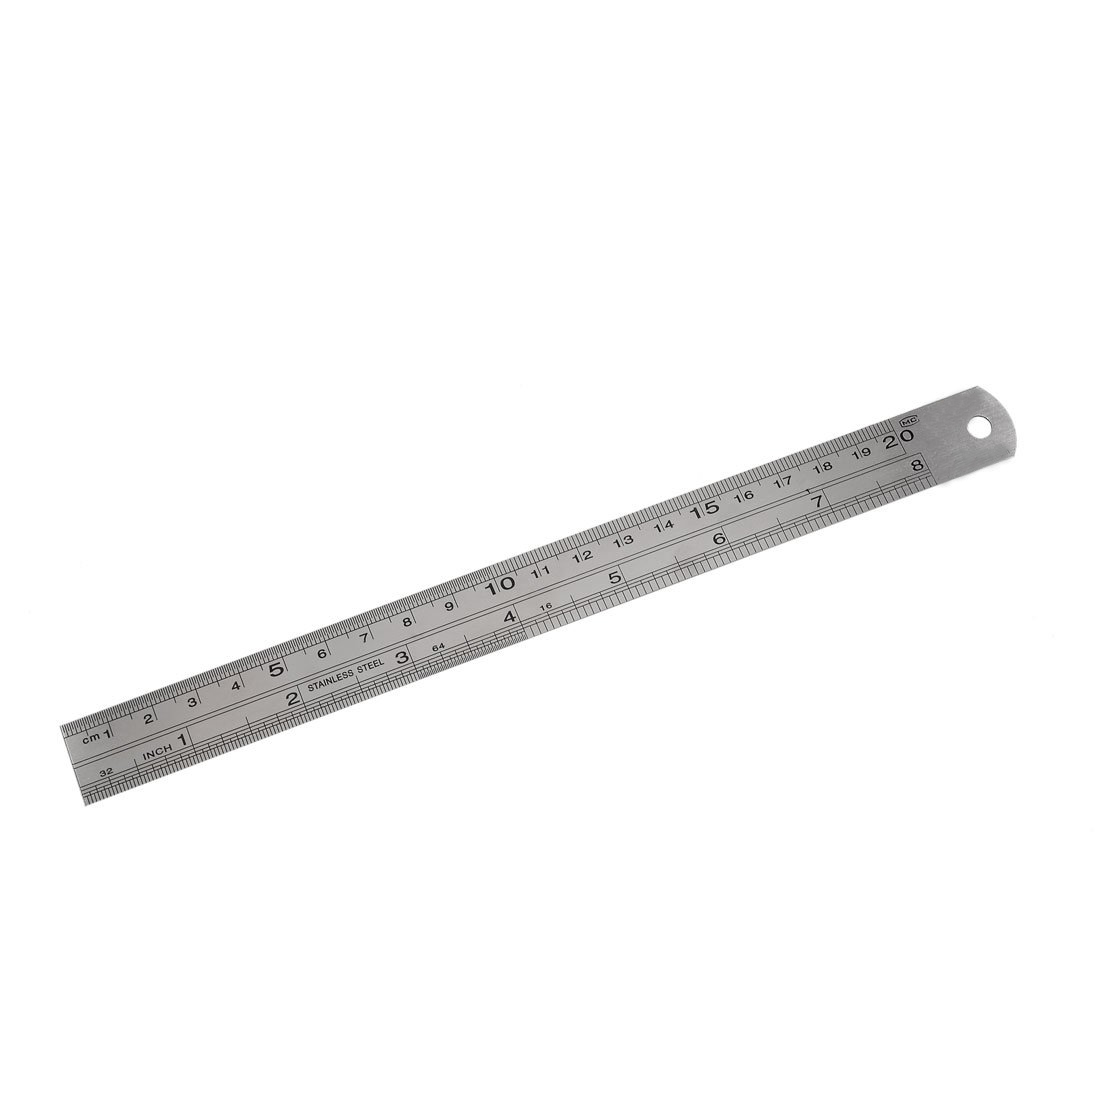 dhdl stainless steel 20cm 8 inch metric straight ruler measuring tool in tape measures from. Black Bedroom Furniture Sets. Home Design Ideas